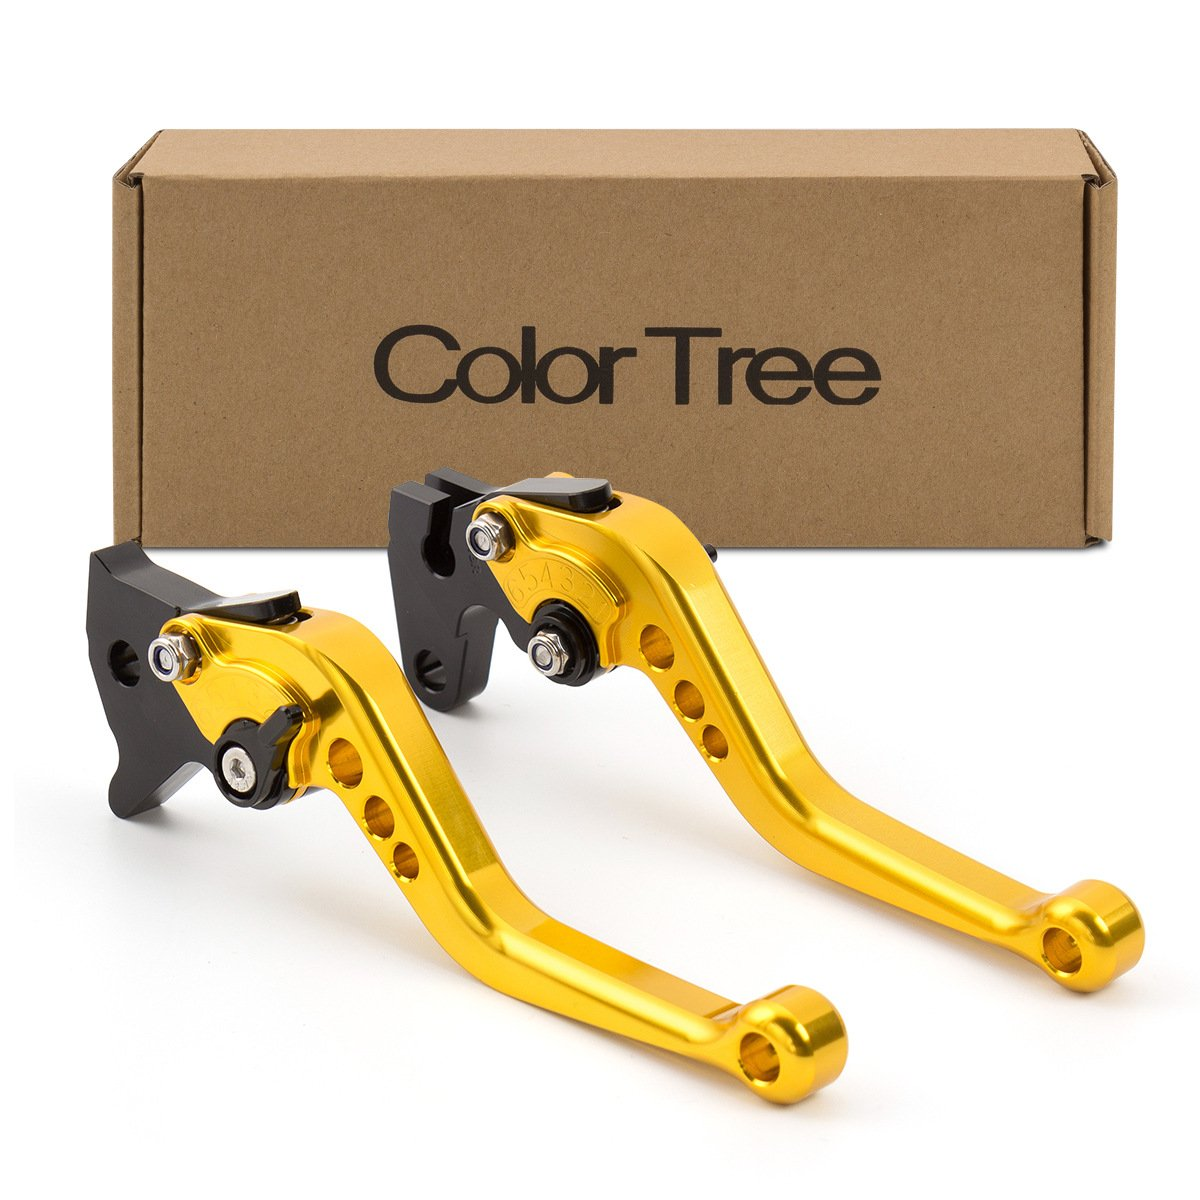 color tree Motorcycle Short Adjustable Billet Brake Clutch CNC Levers fit for BMW R1200R 06-14,R1200GS 04-12,R1200GS Adventure 06-13,K1200R SPORT R1200S 06-08